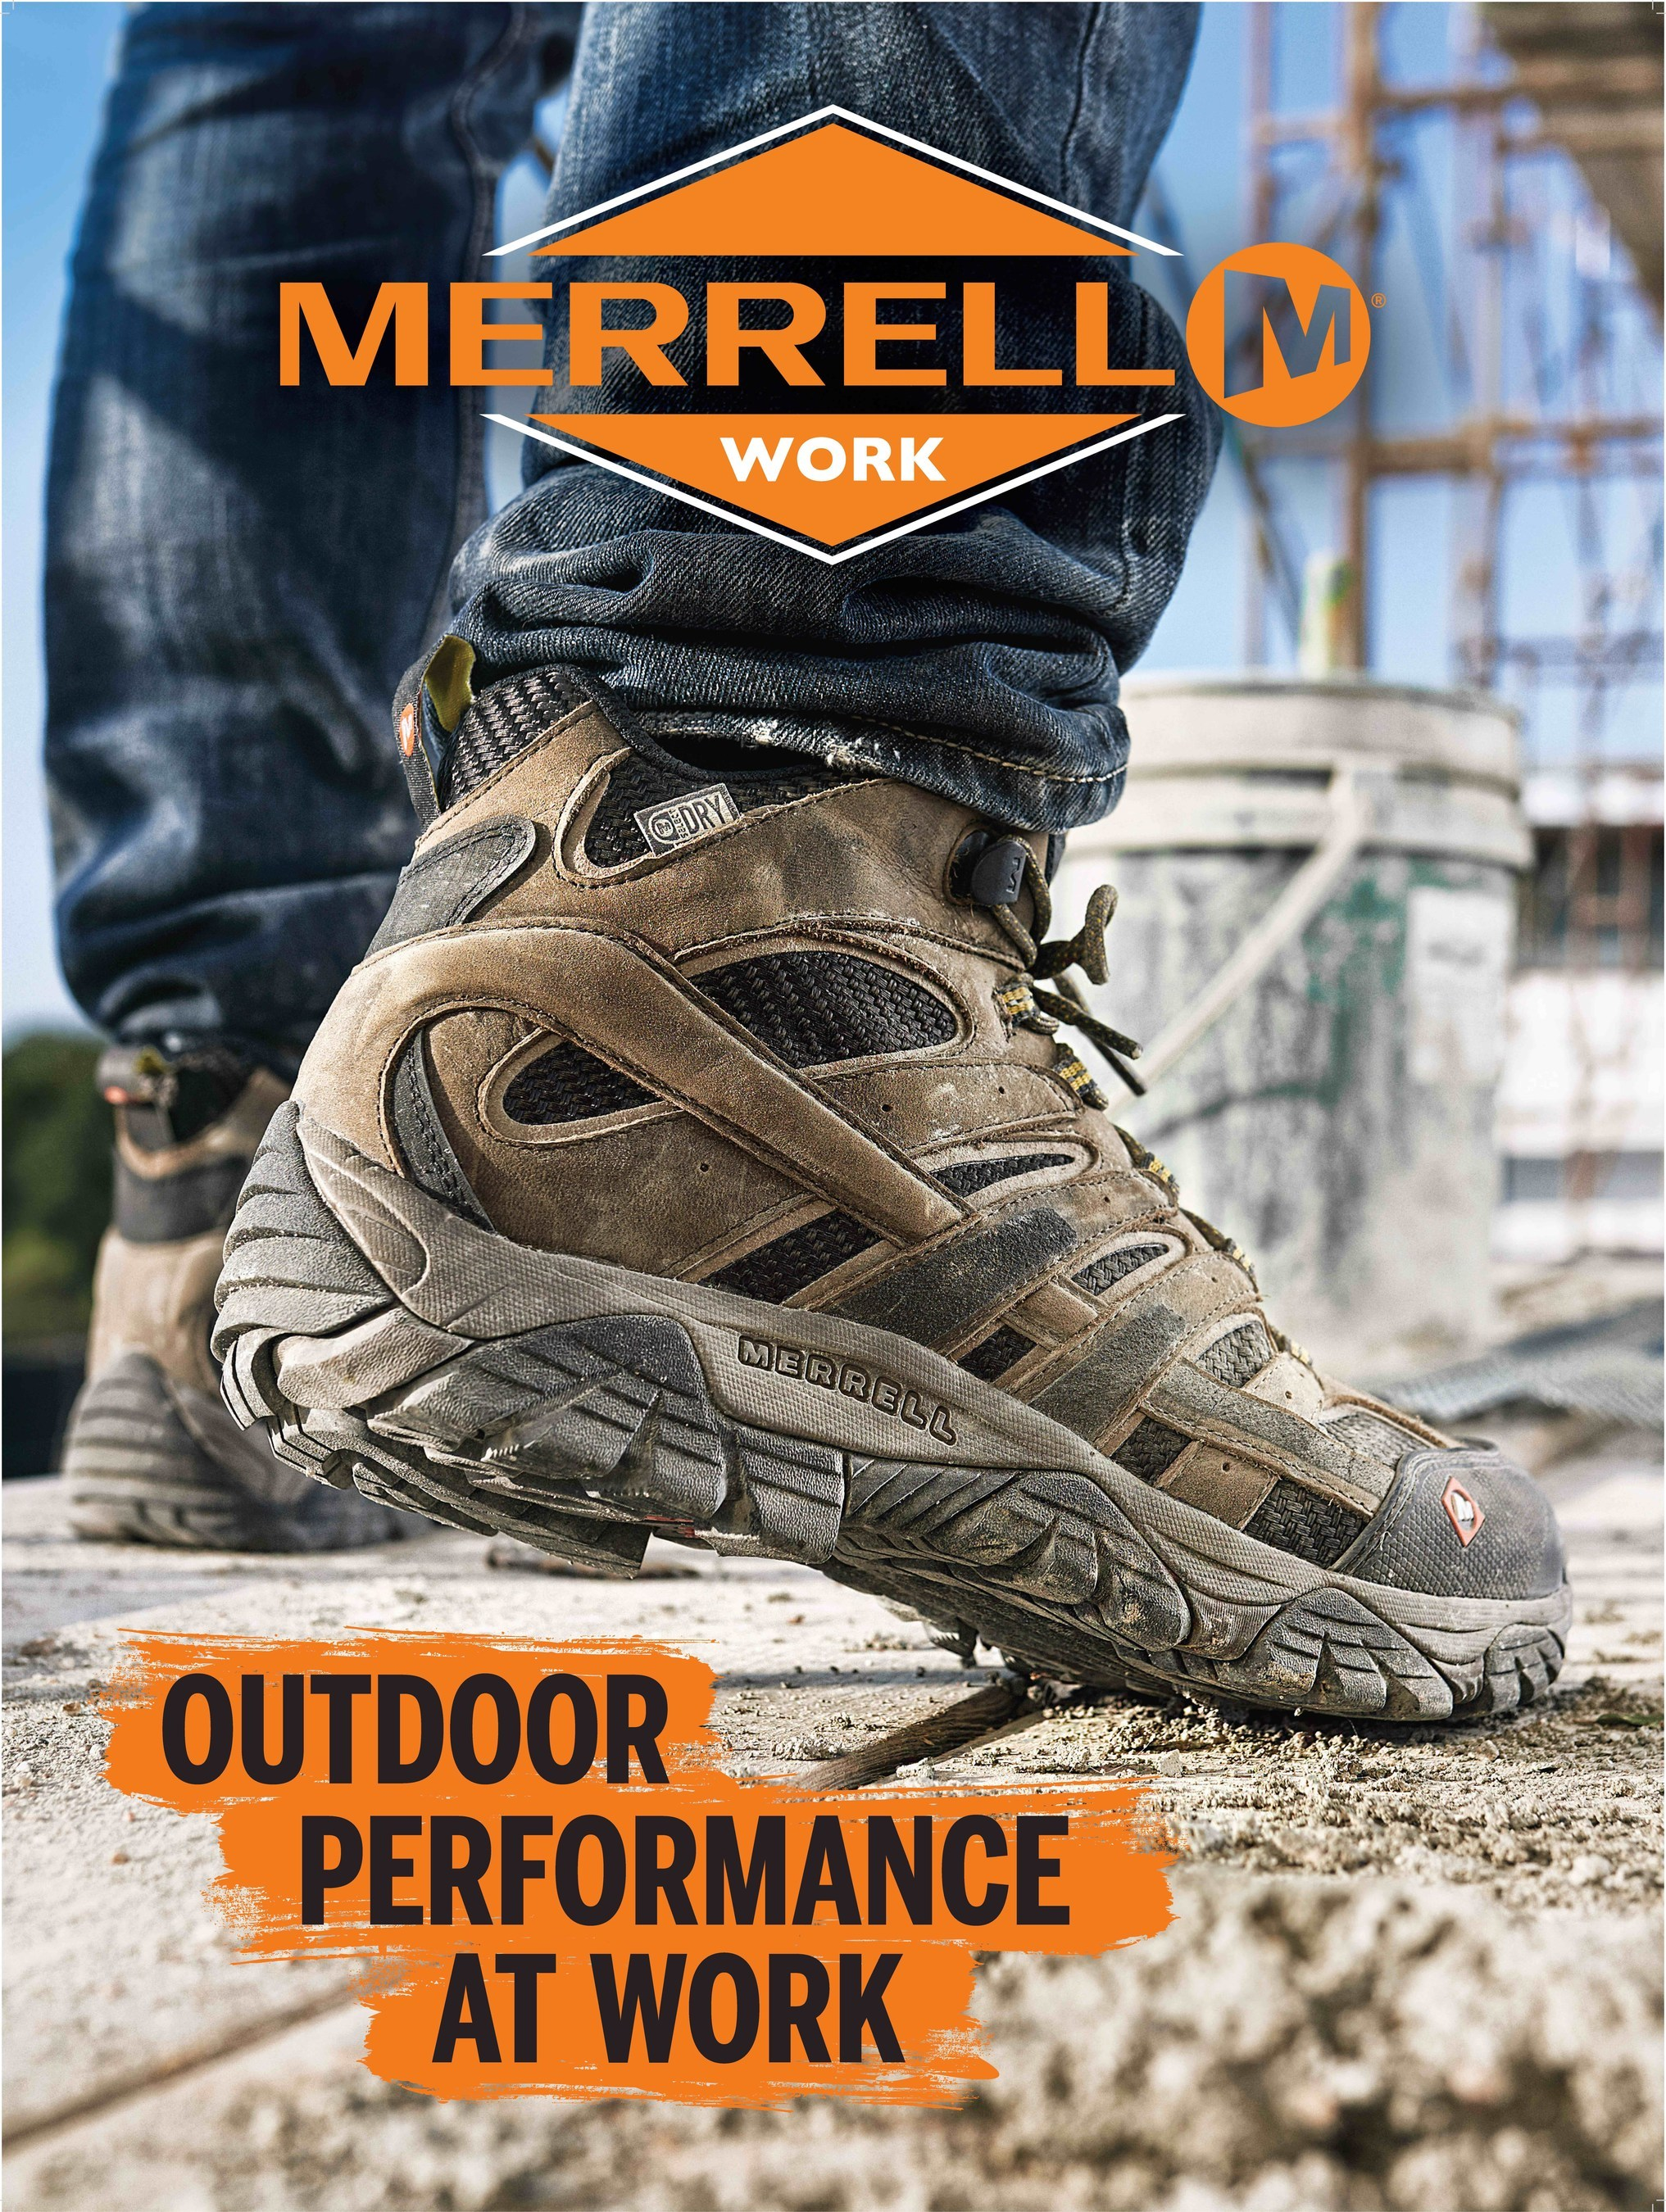 MERRELL: Shop outdoor footwear & apparel in hiking, running, & casual styles to equip you for your active lifestyle. Free shipping!